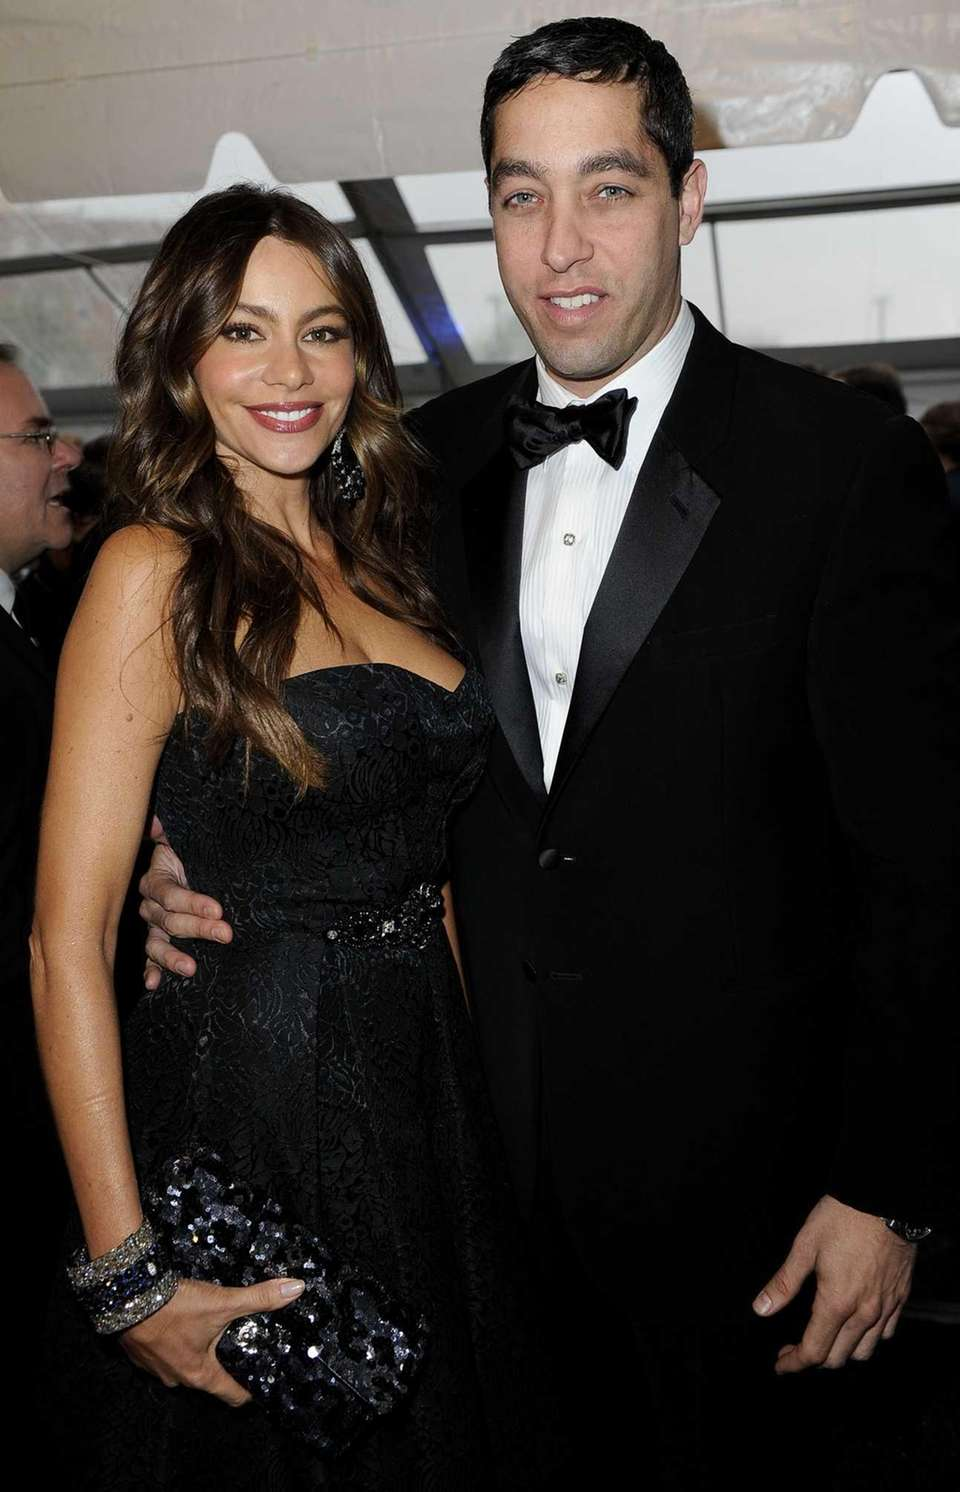 Sofia Vergara and Nick Loeb attend the Yahoo!